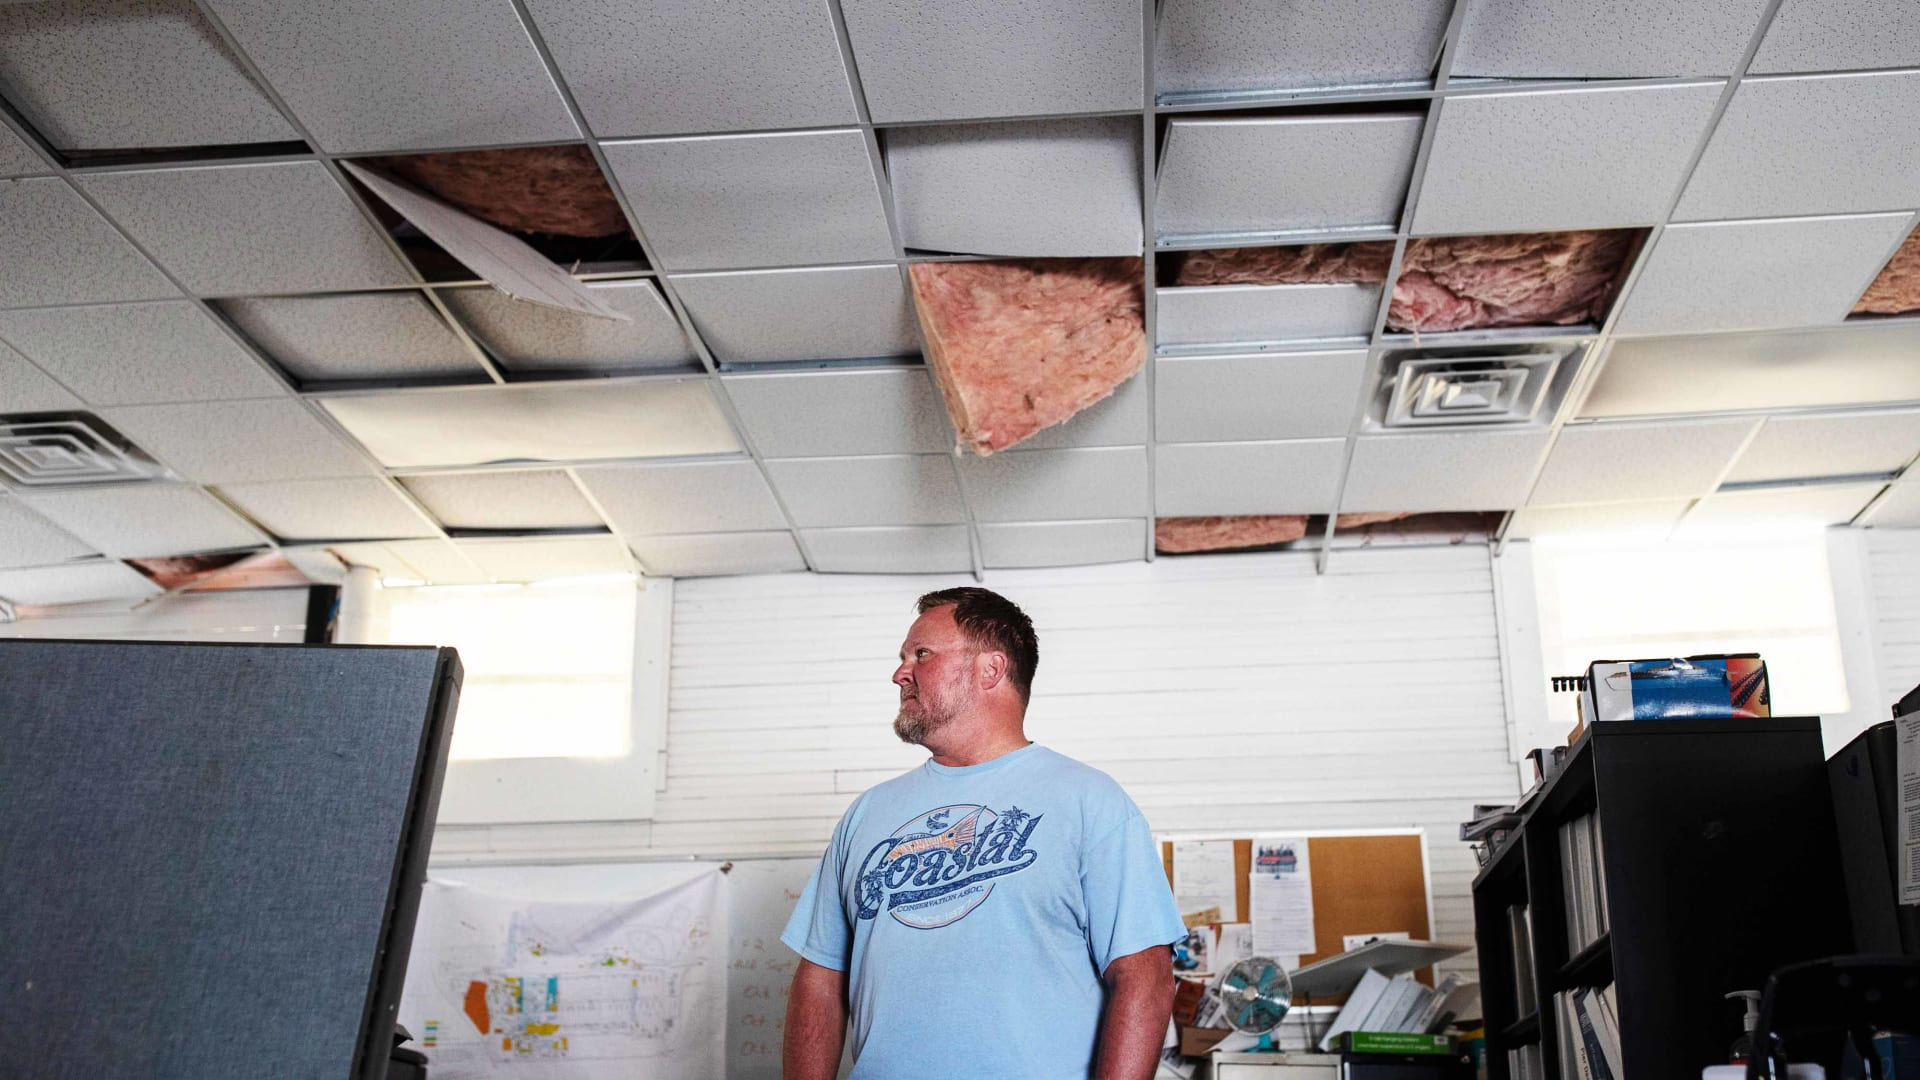 How to Get Relief for Your Business After a Natural Disaster